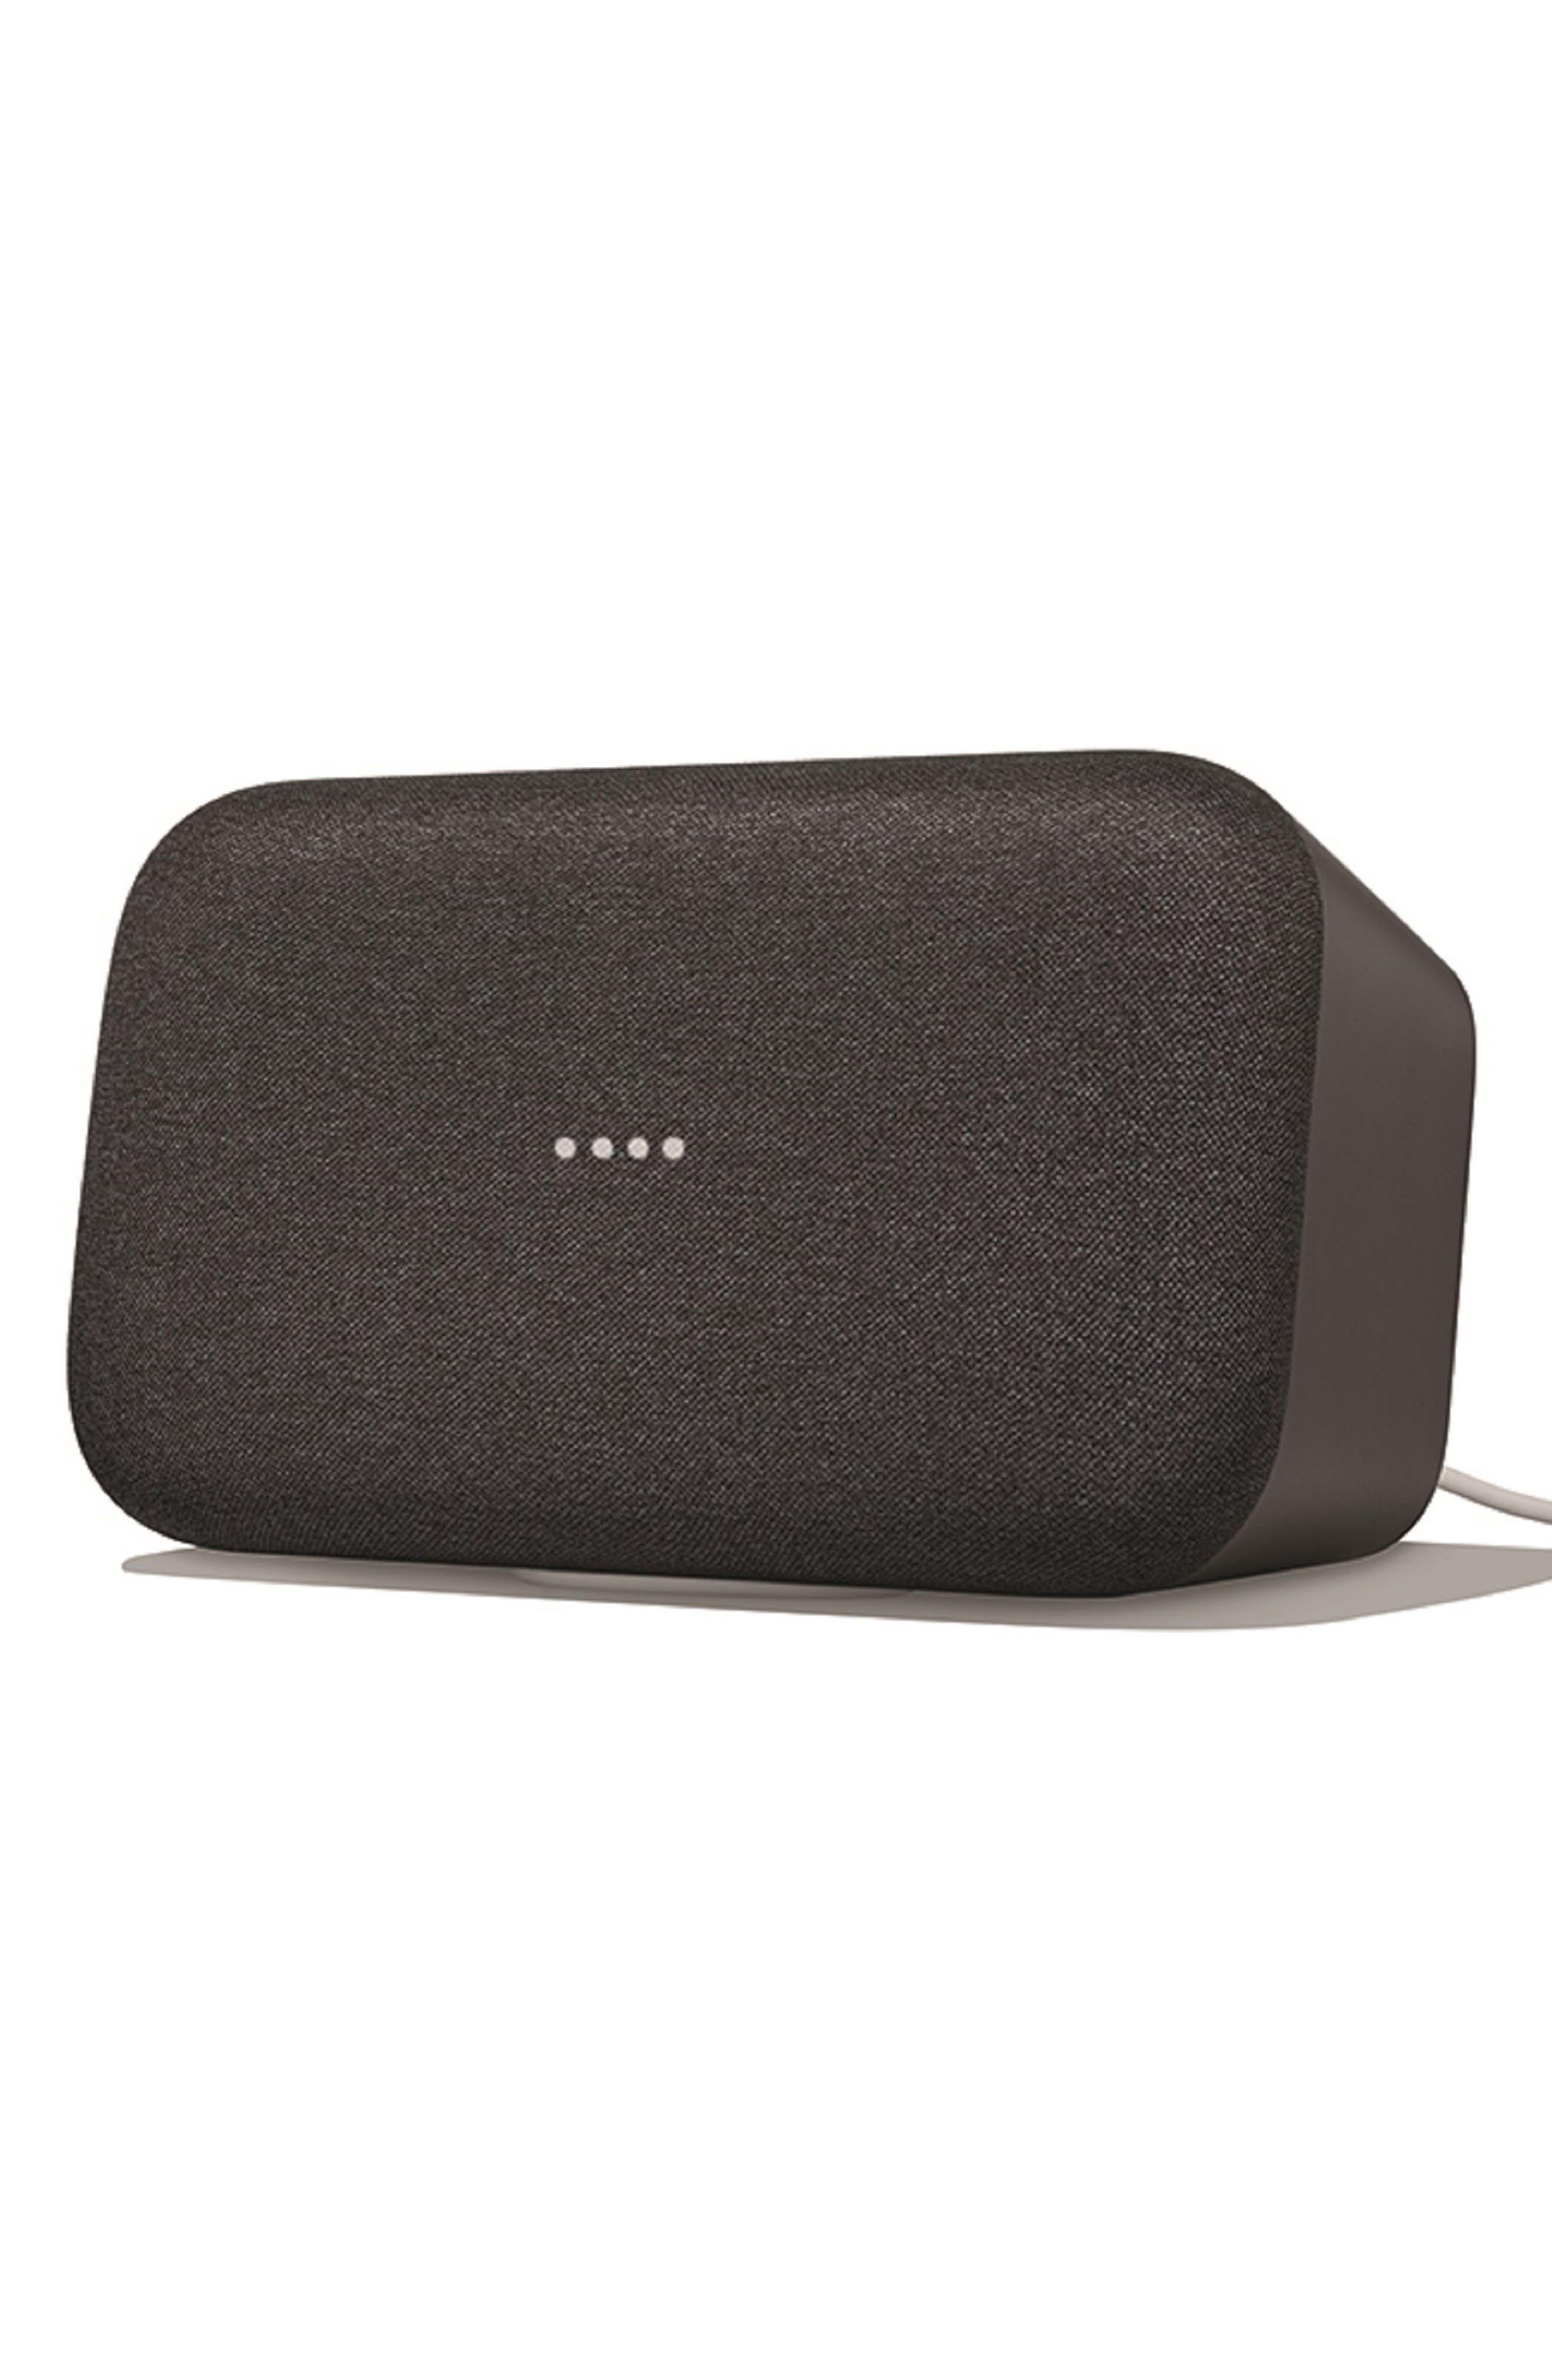 GOOGLE,                             Home Max Wireless Speaker,                             Main thumbnail 1, color,                             010